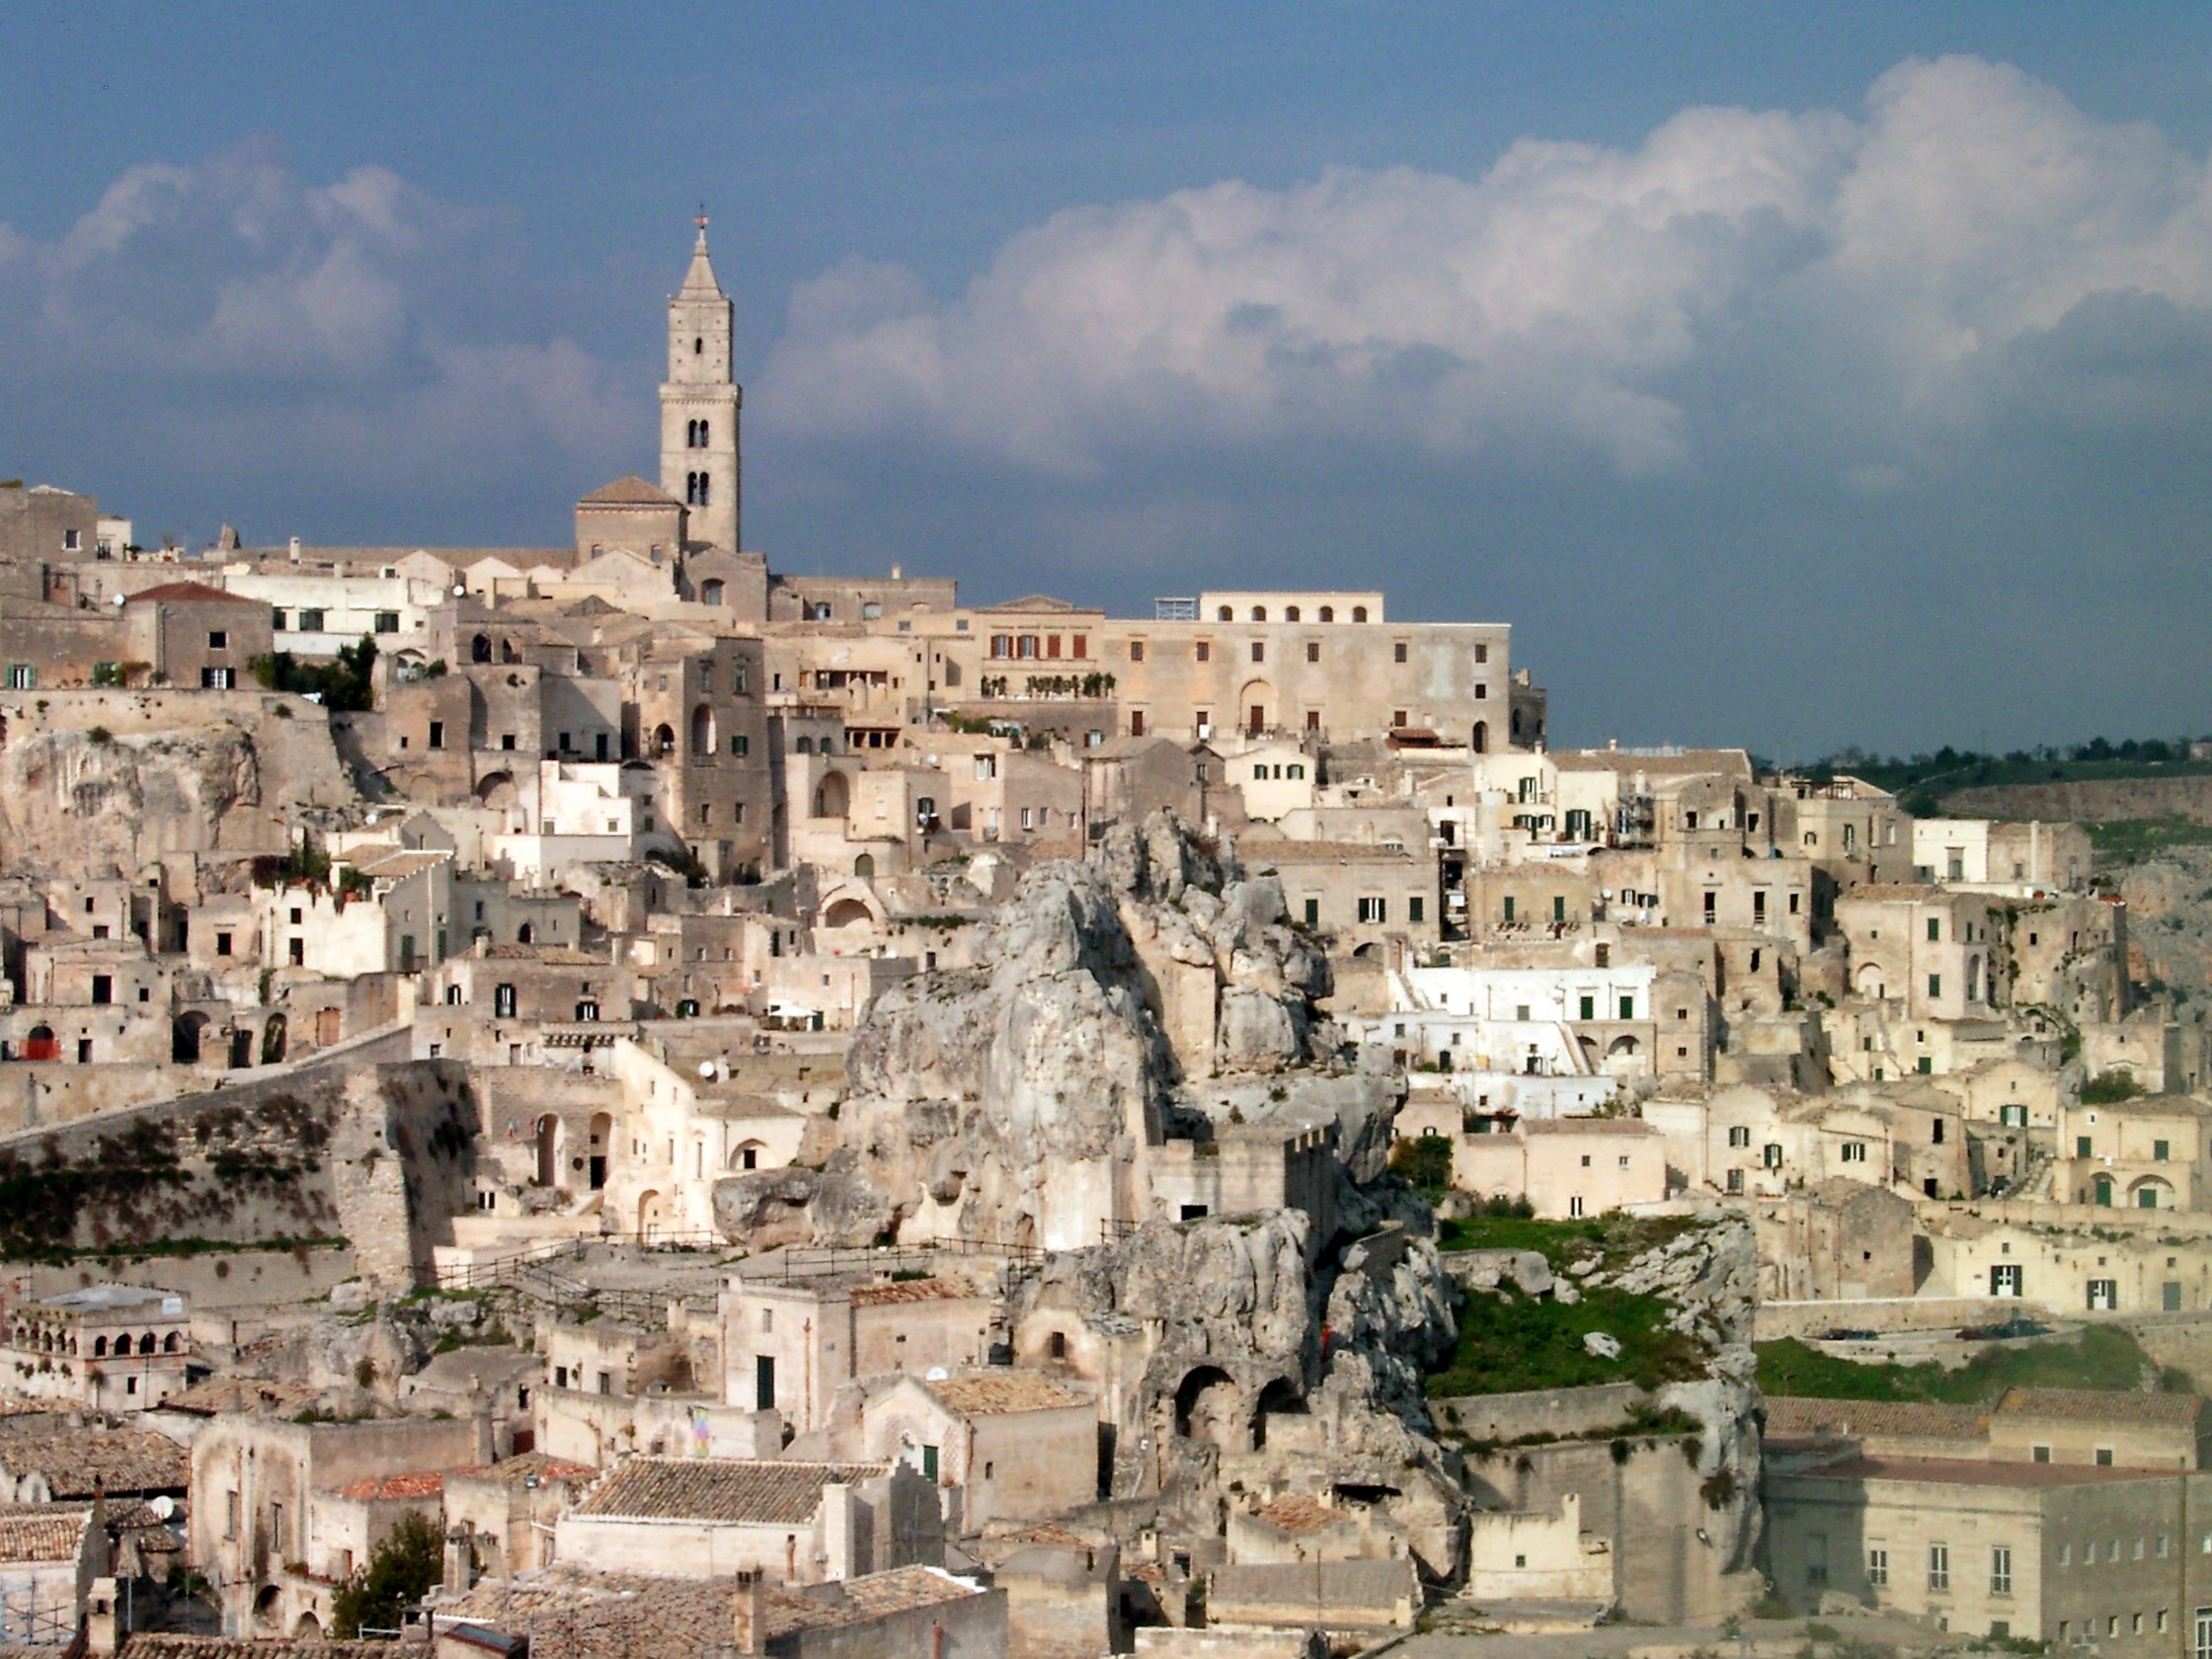 http://upload.wikimedia.org/wikipedia/commons/a/a0/Matera_boenisch_nov_2005.jpg